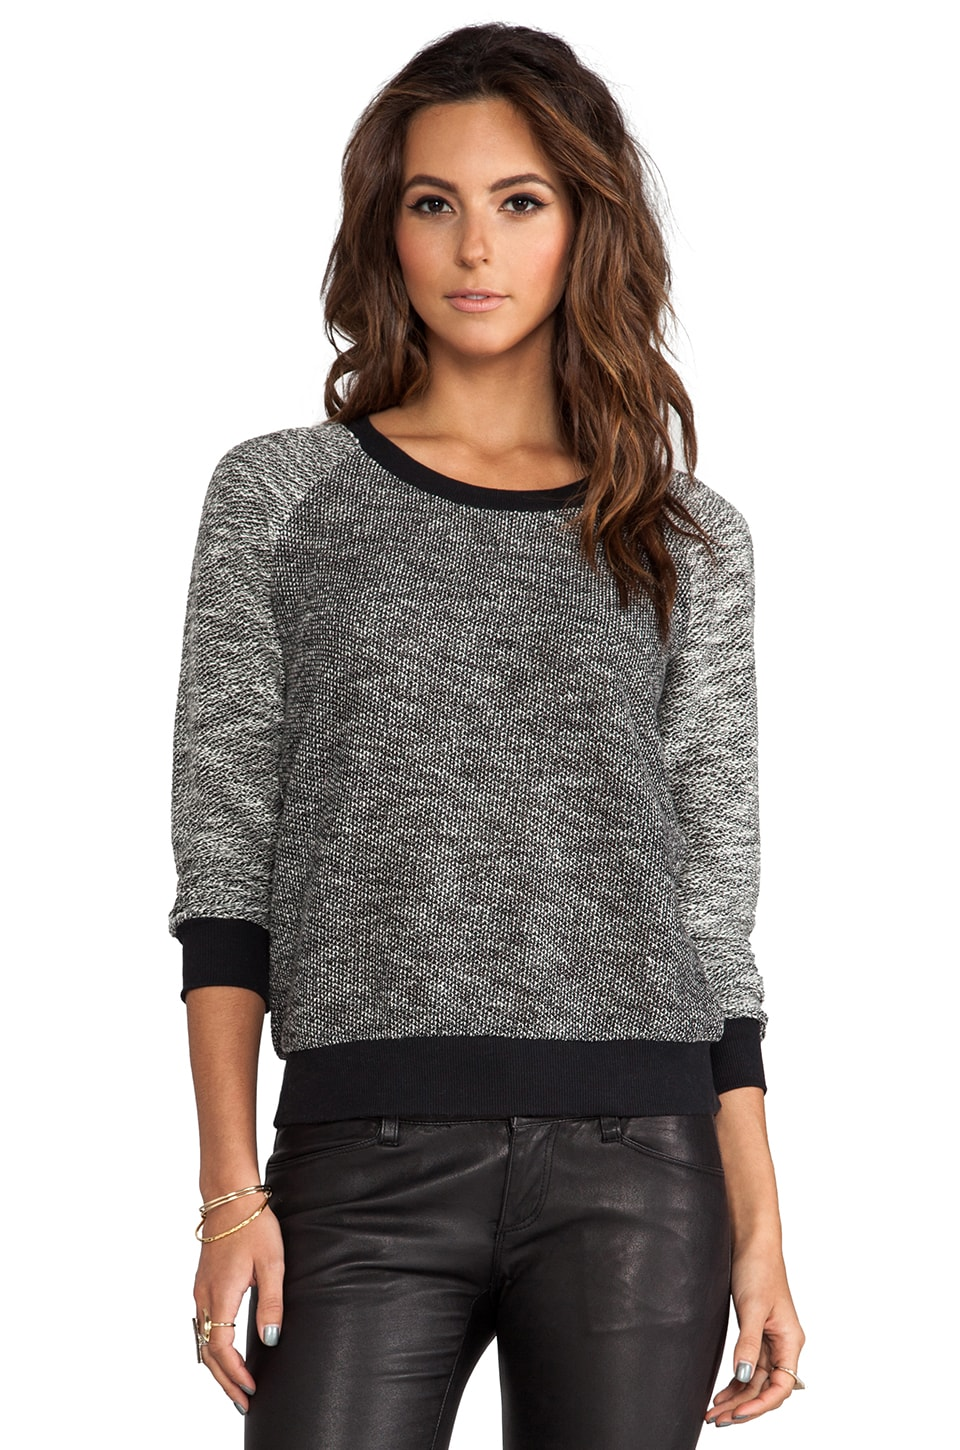 Splendid Boucle Active Pullover Sweater in Black/White